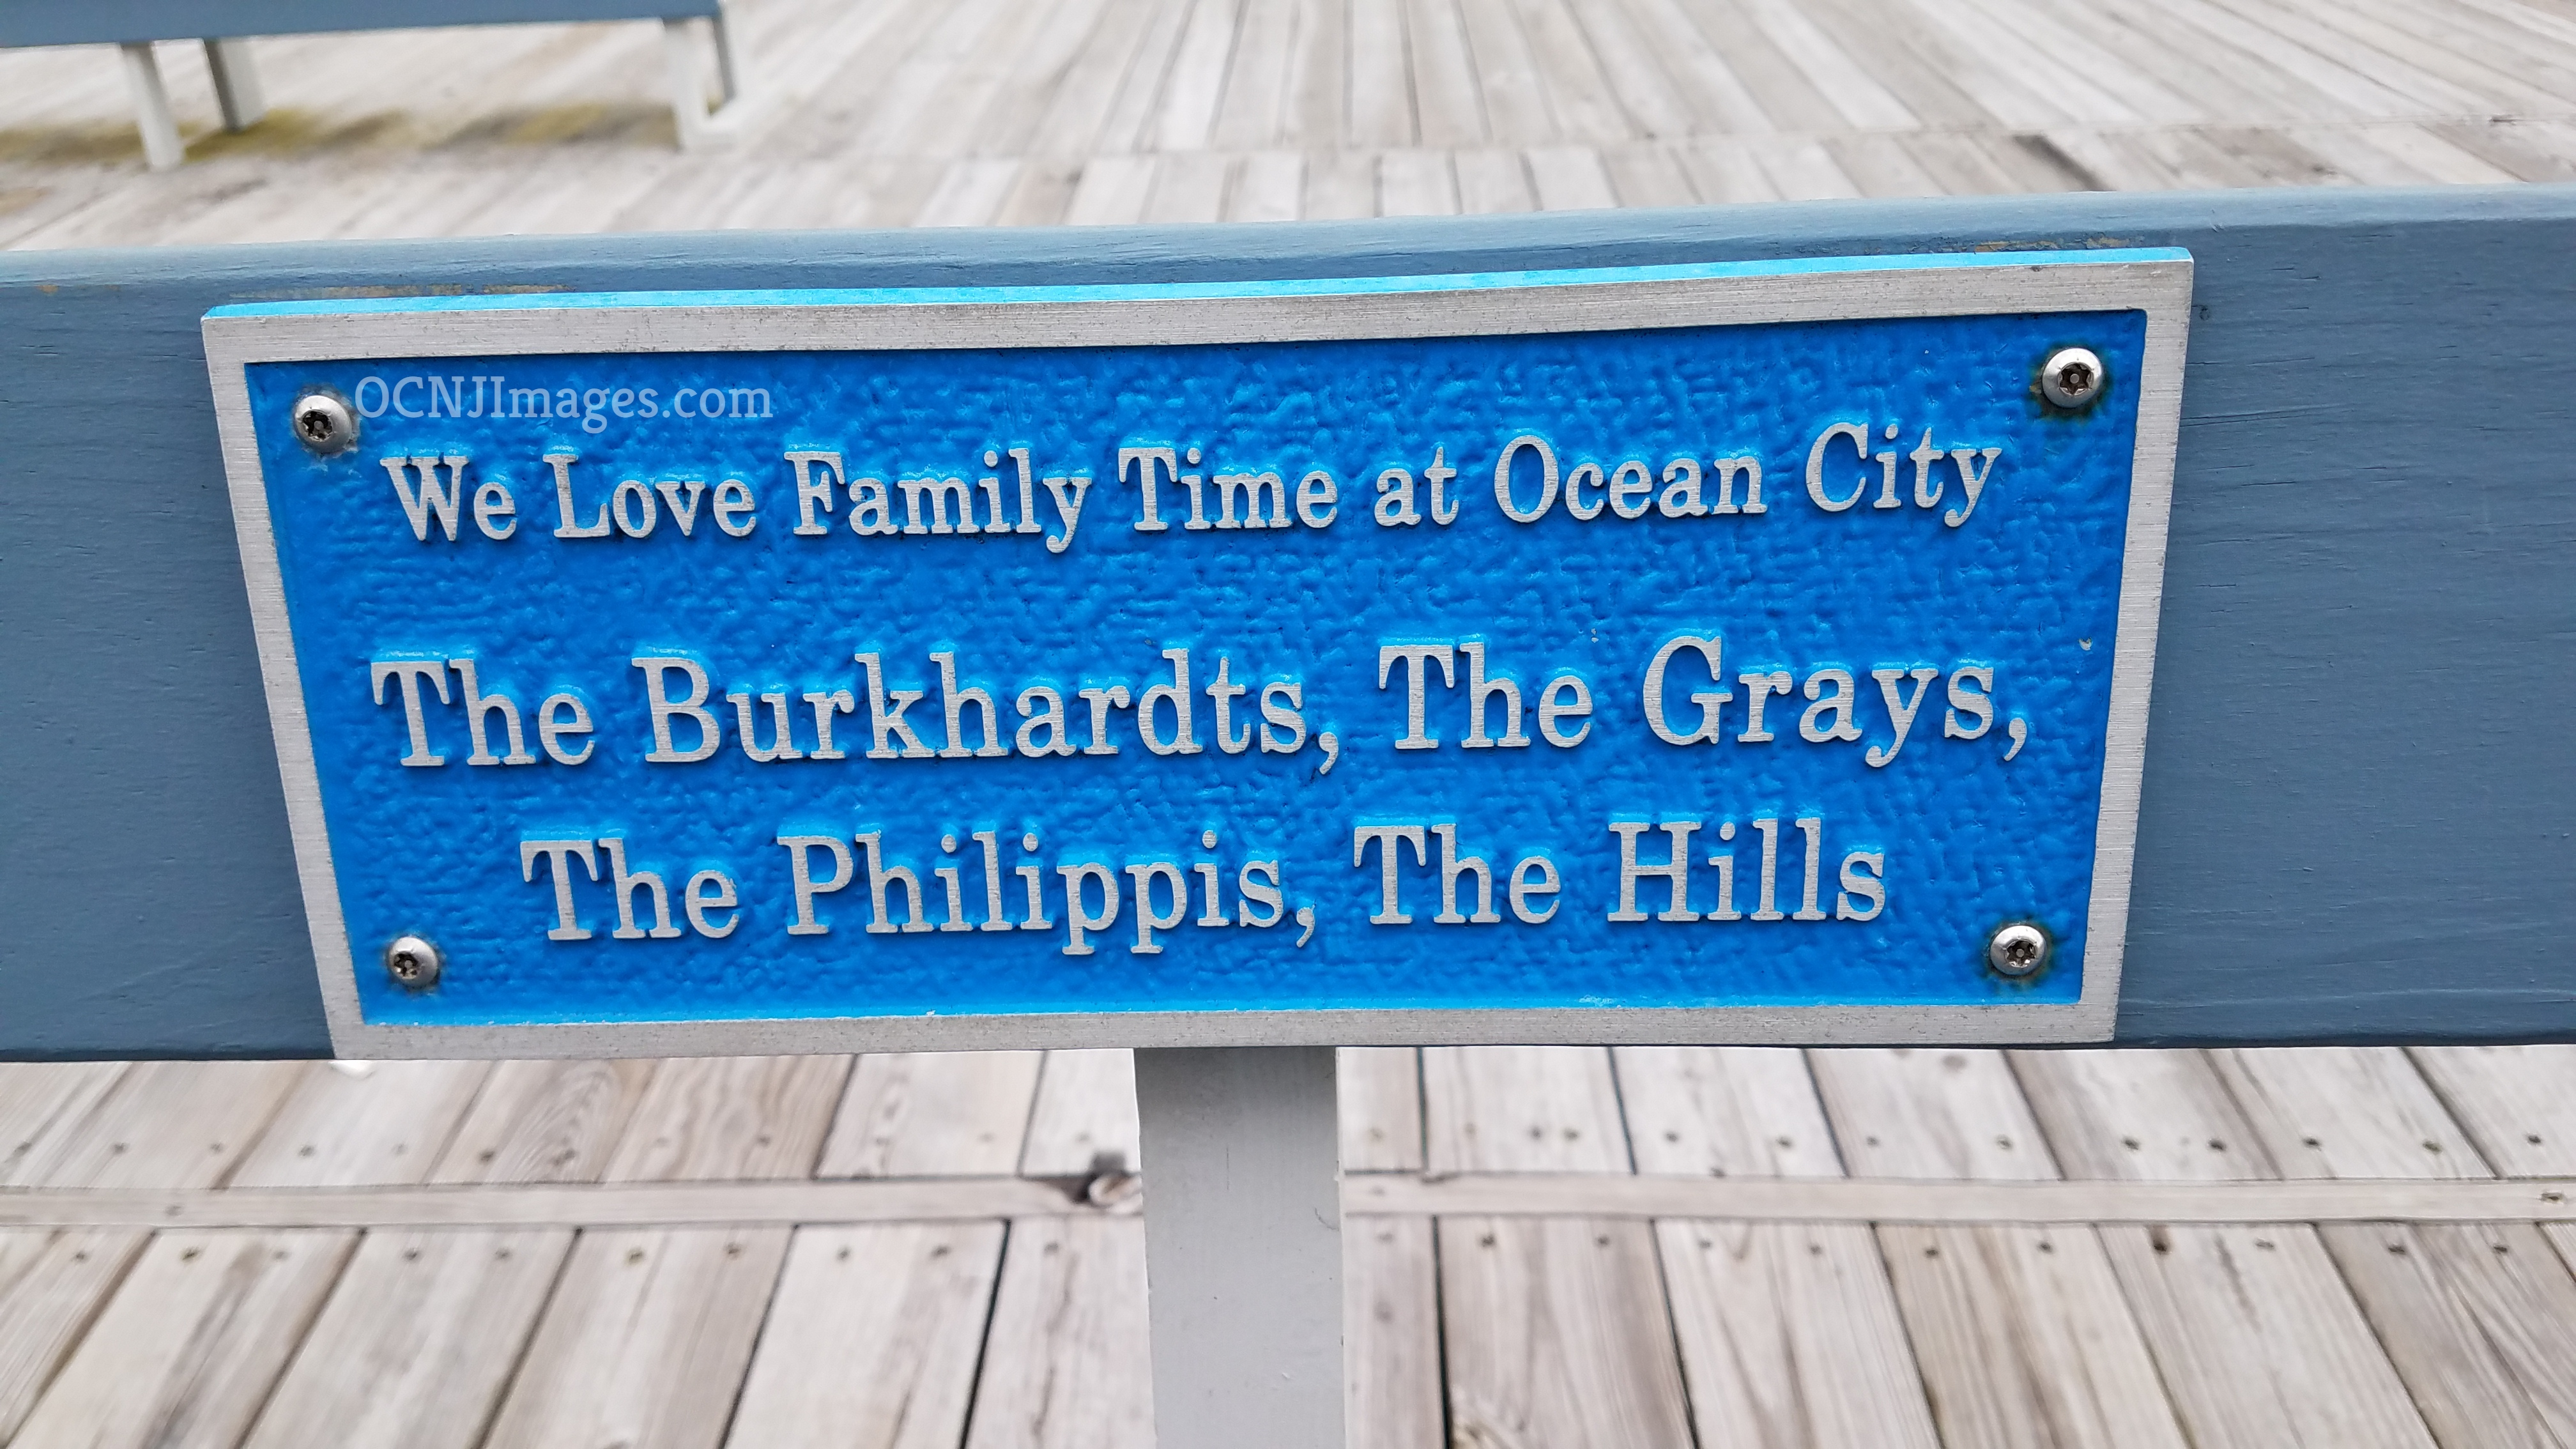 The Burkhardts, The Grays, The Philippis, The Hills